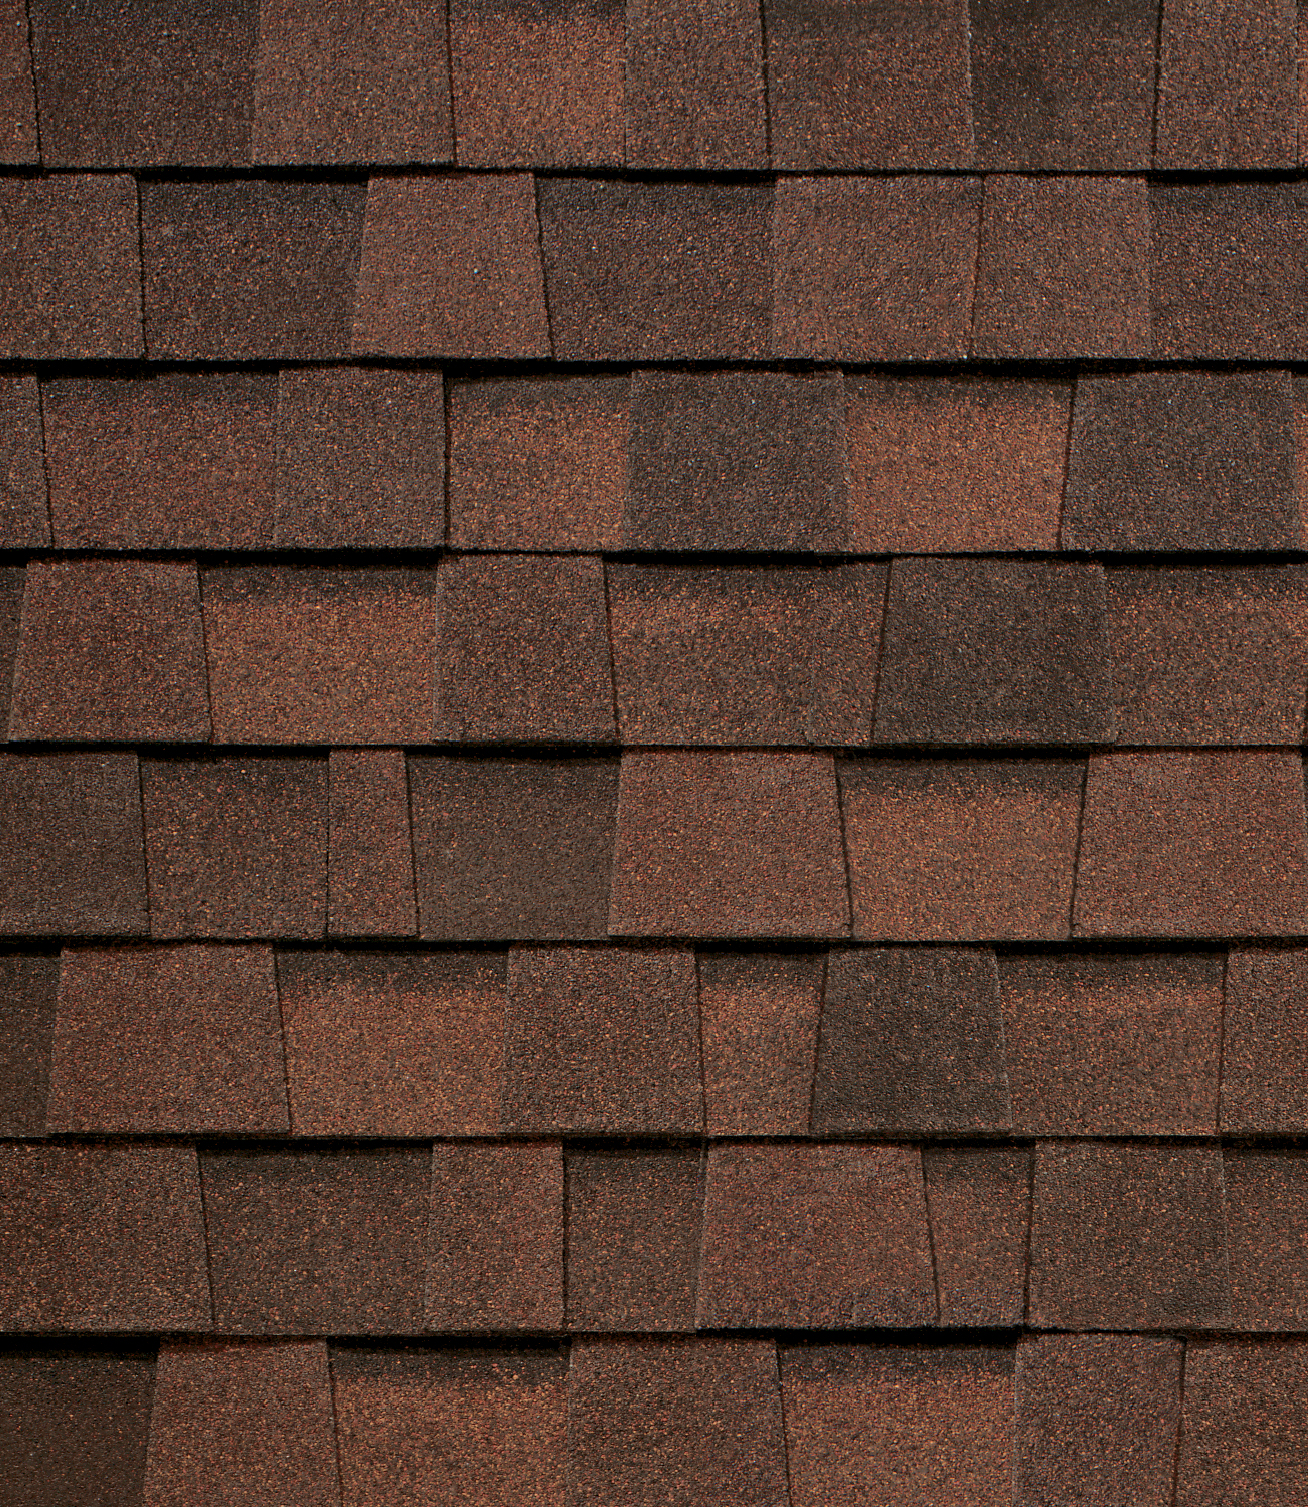 Beautiful Homes Start with Heritage Shingles: Cedar Shake Roofing | Heritage Weathered Wood Shingles | Heritage Shingles